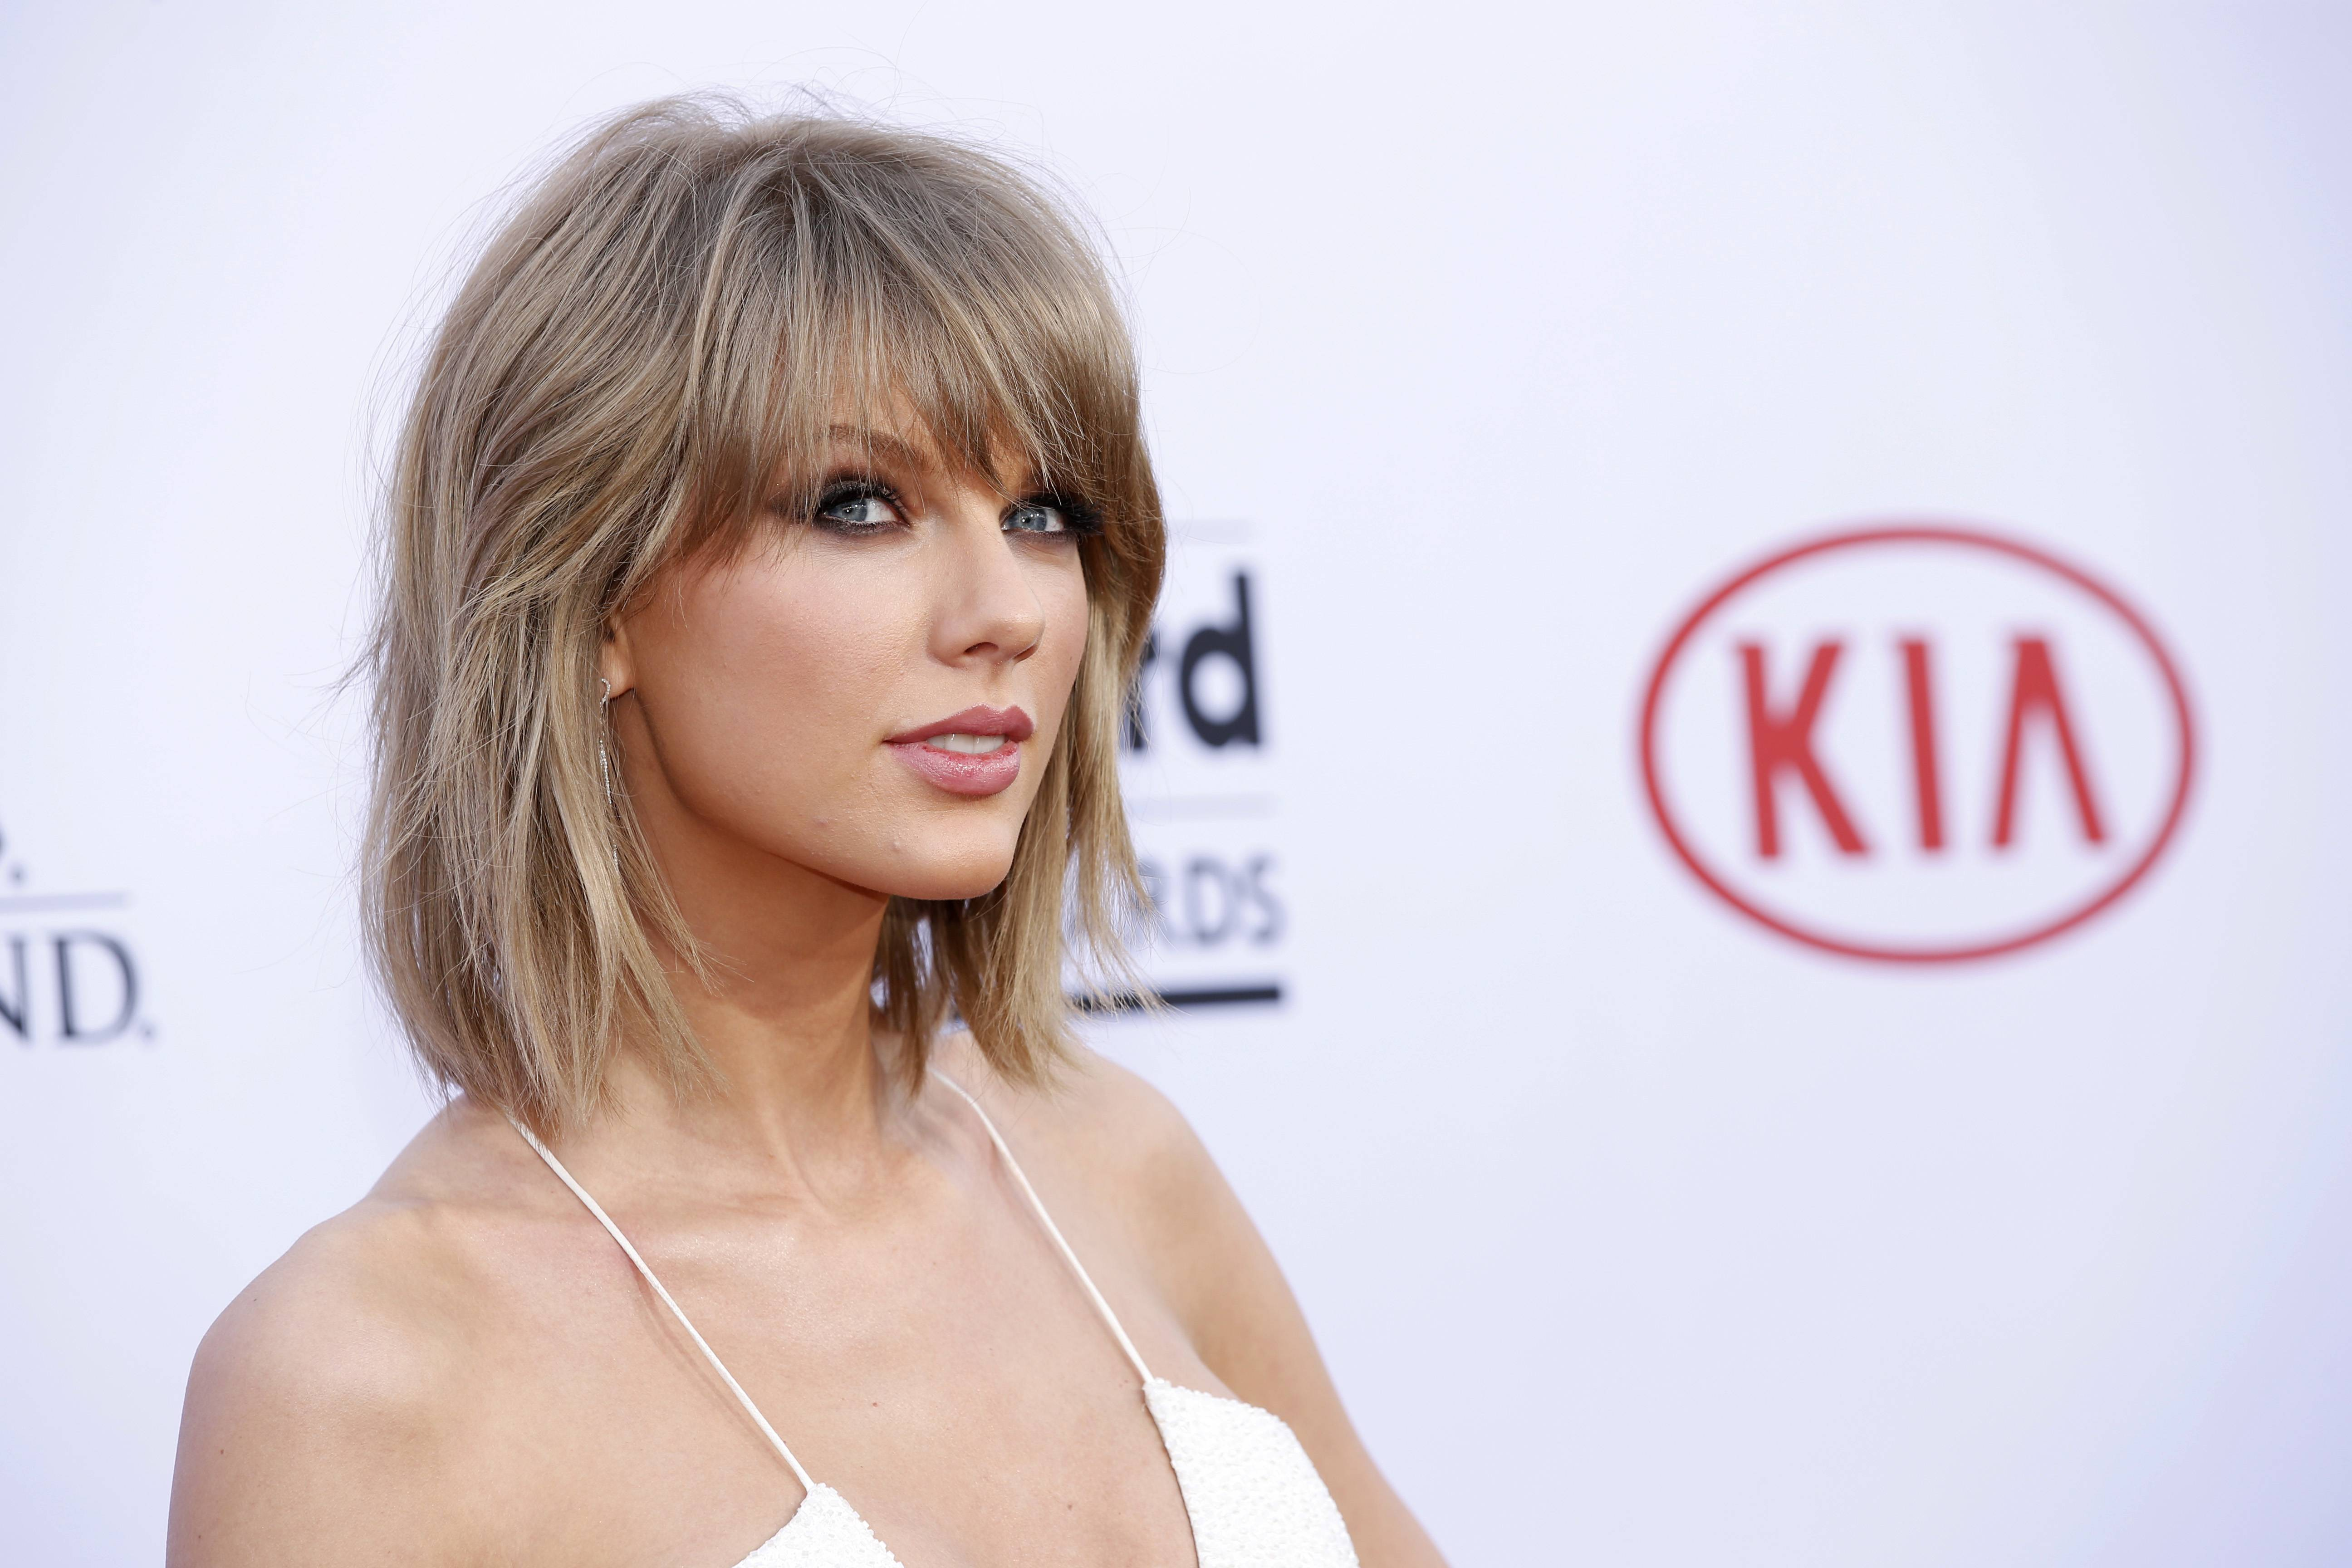 Taylor Swift arrives at the Billboard Music Awards at the MGM Grand Garden Arena on Sunday in Las Vegas.